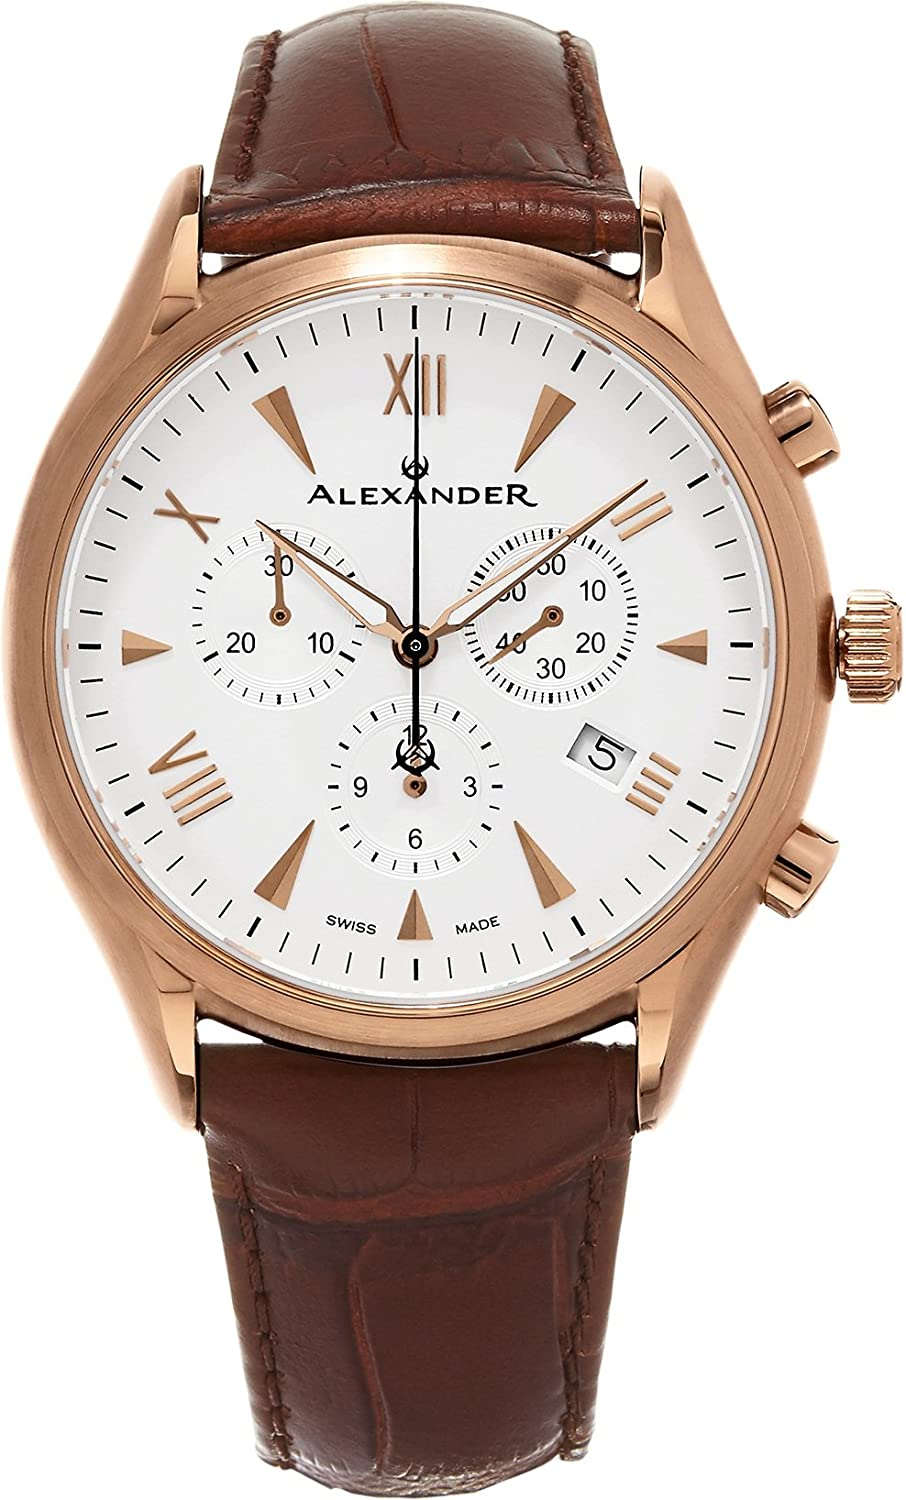 Alexander Heroic Pella Men s Multi-Function Chronograph Brown Leather Strap Rose Gold Plated Swiss Made Watch A021-04